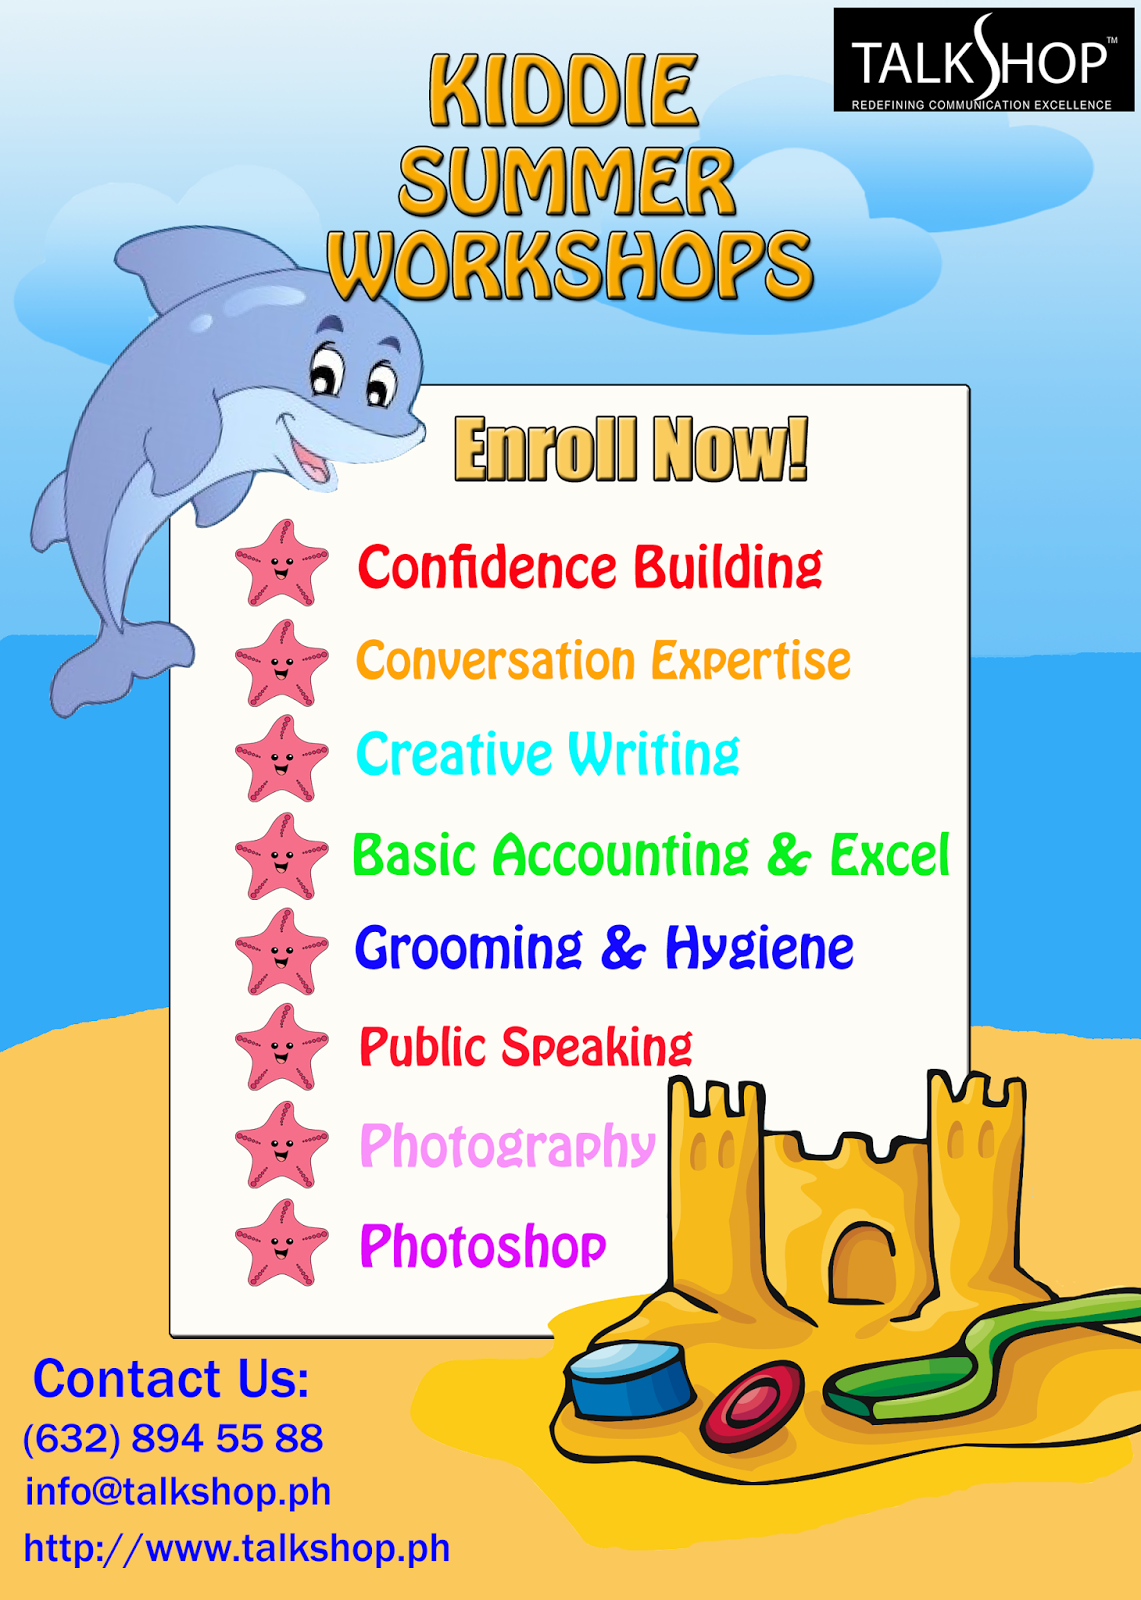 TalkShop's Kiddie Summer Workshops